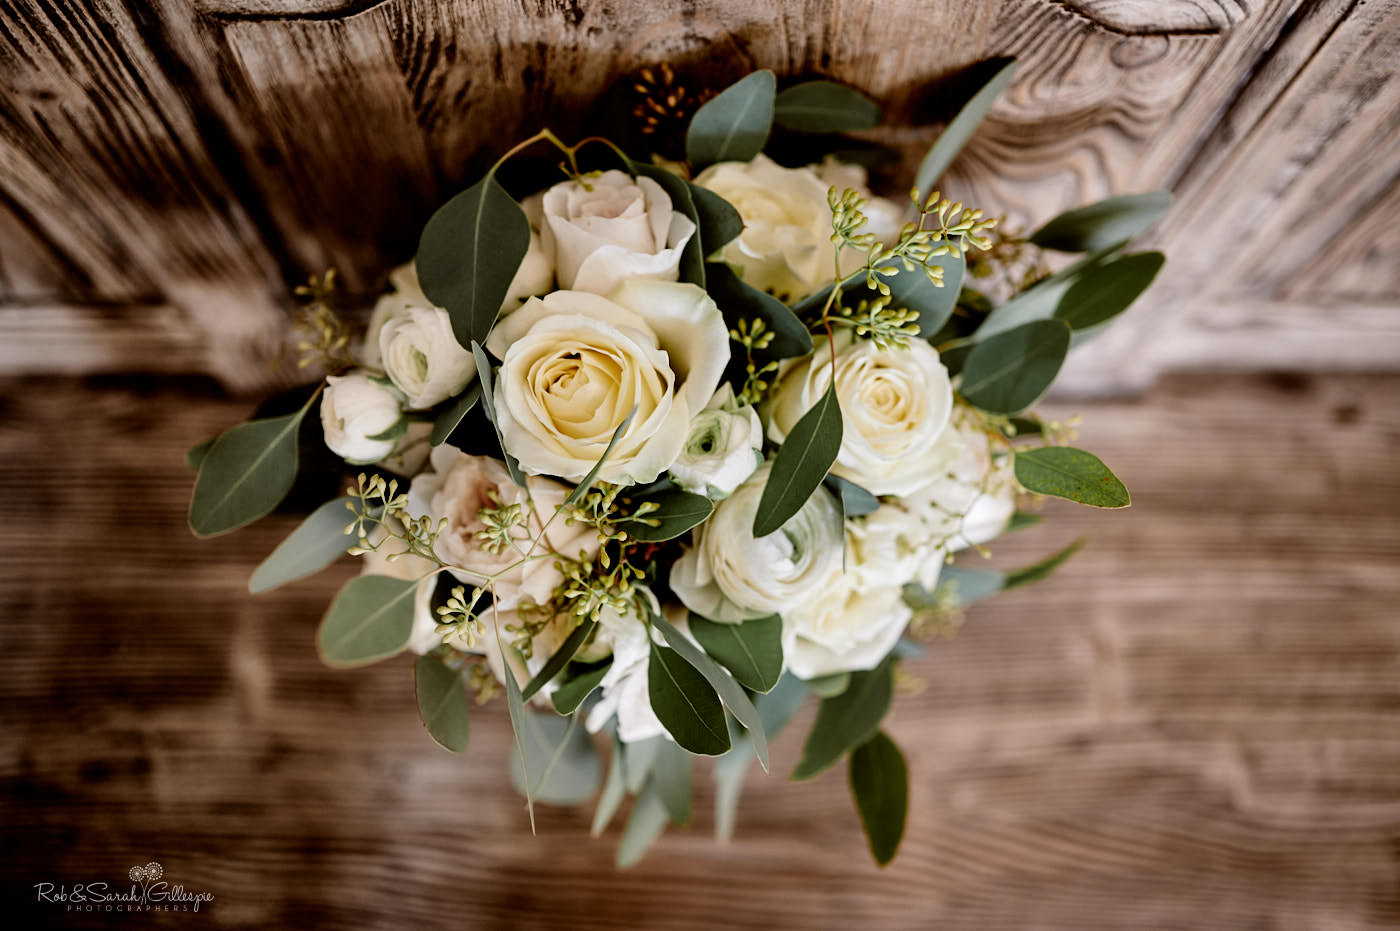 Bridal bouquet on wooden bench